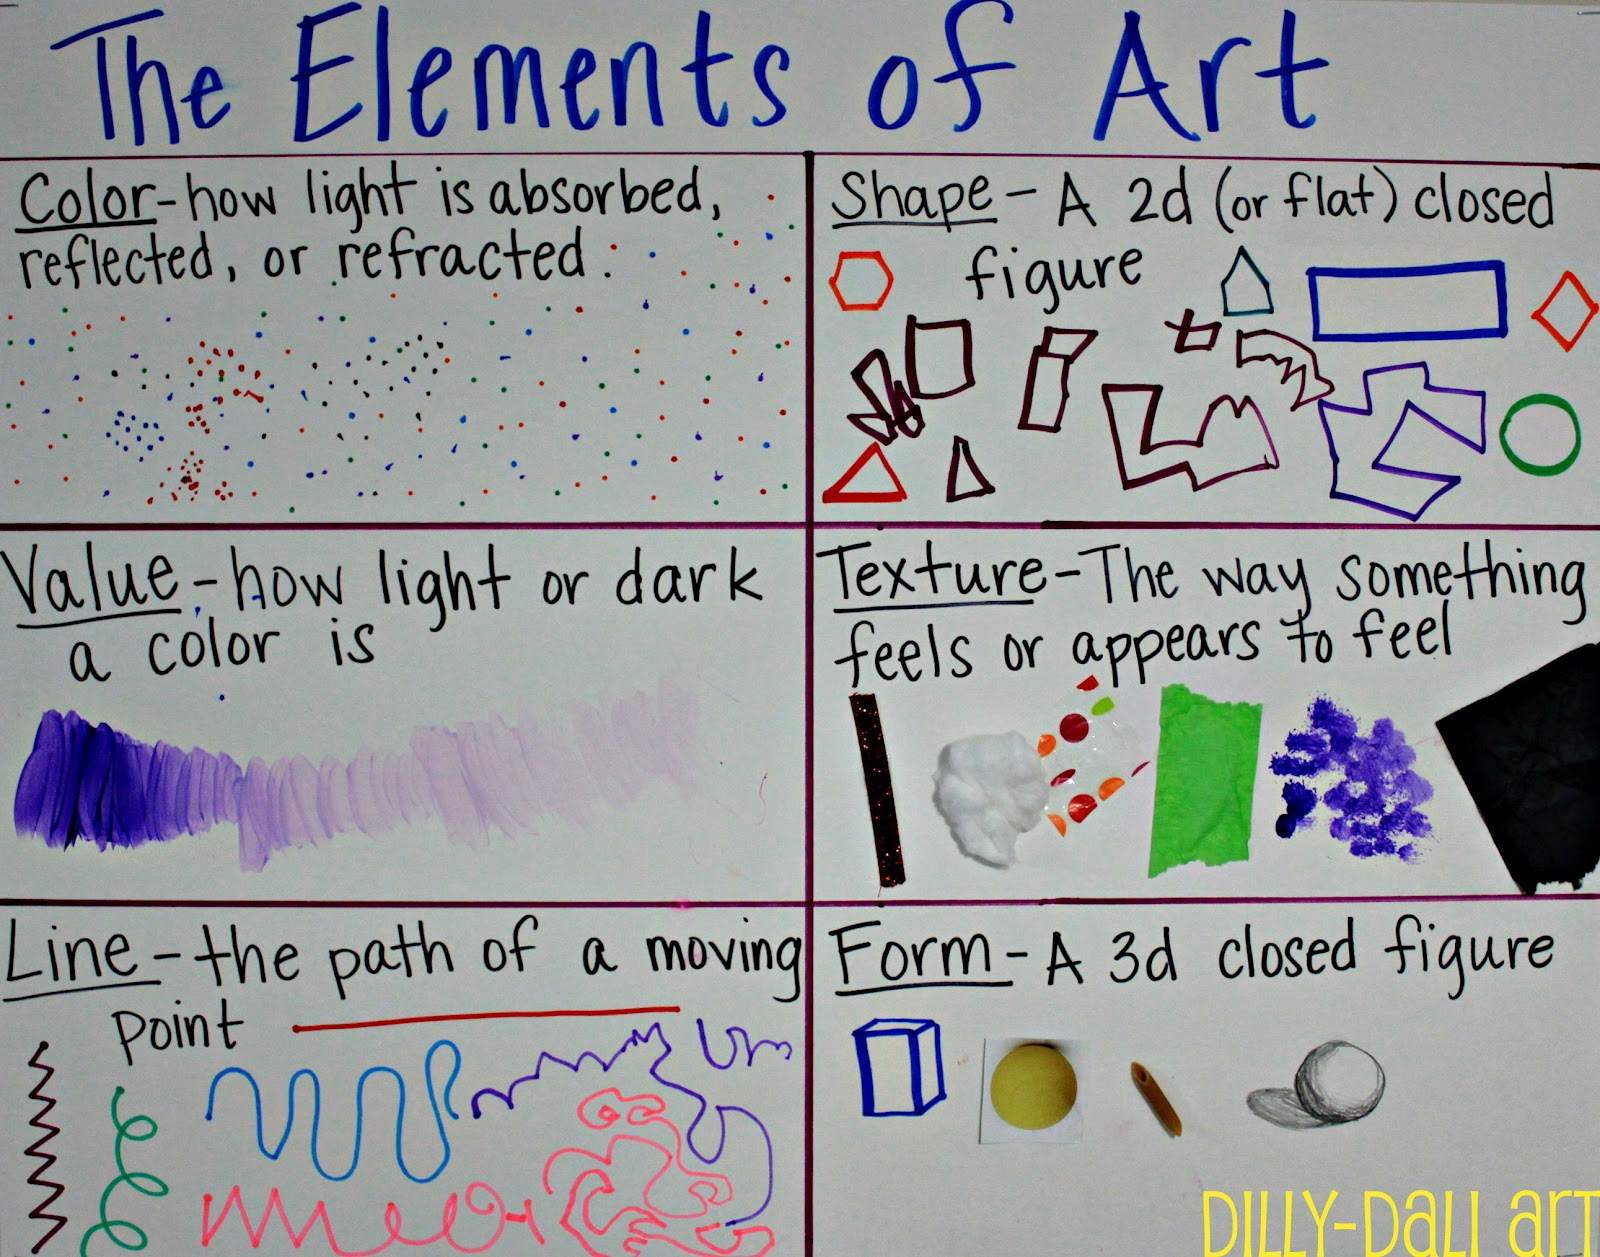 5 Elements Of Art : Dilly dali art elements of poster